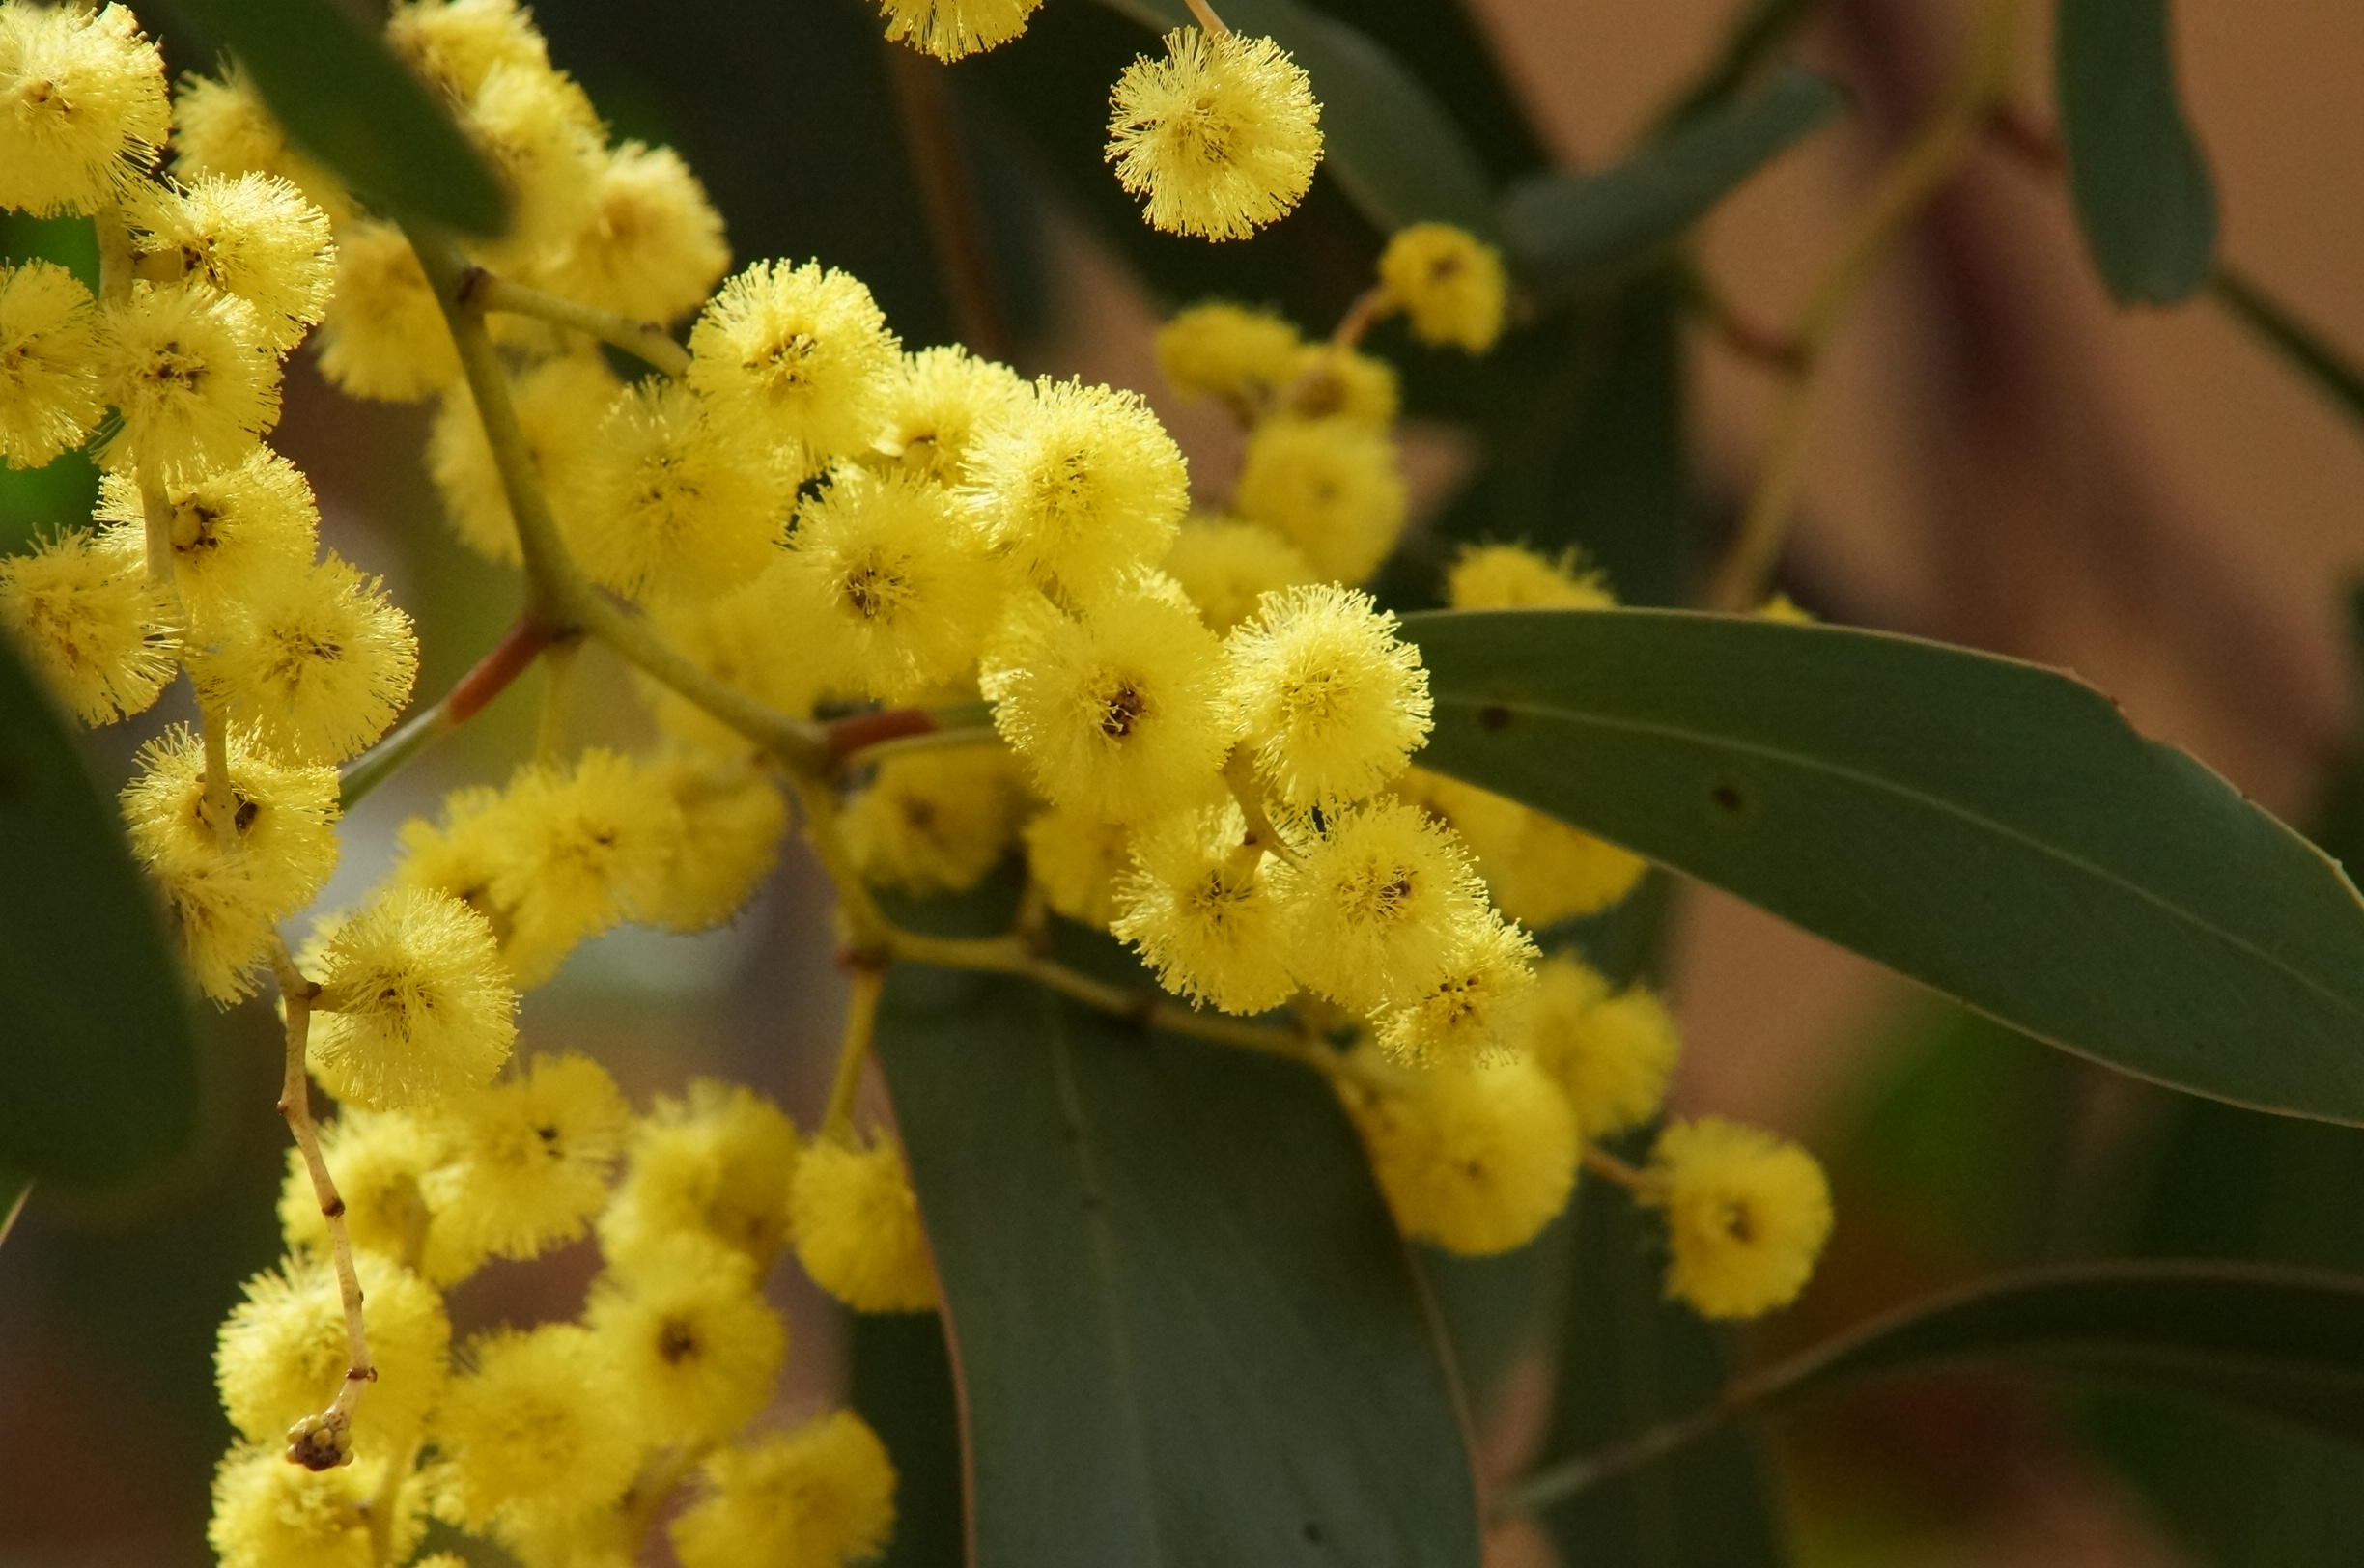 Golden Wattle (Acacia pycnantha) by Mark Tunningley